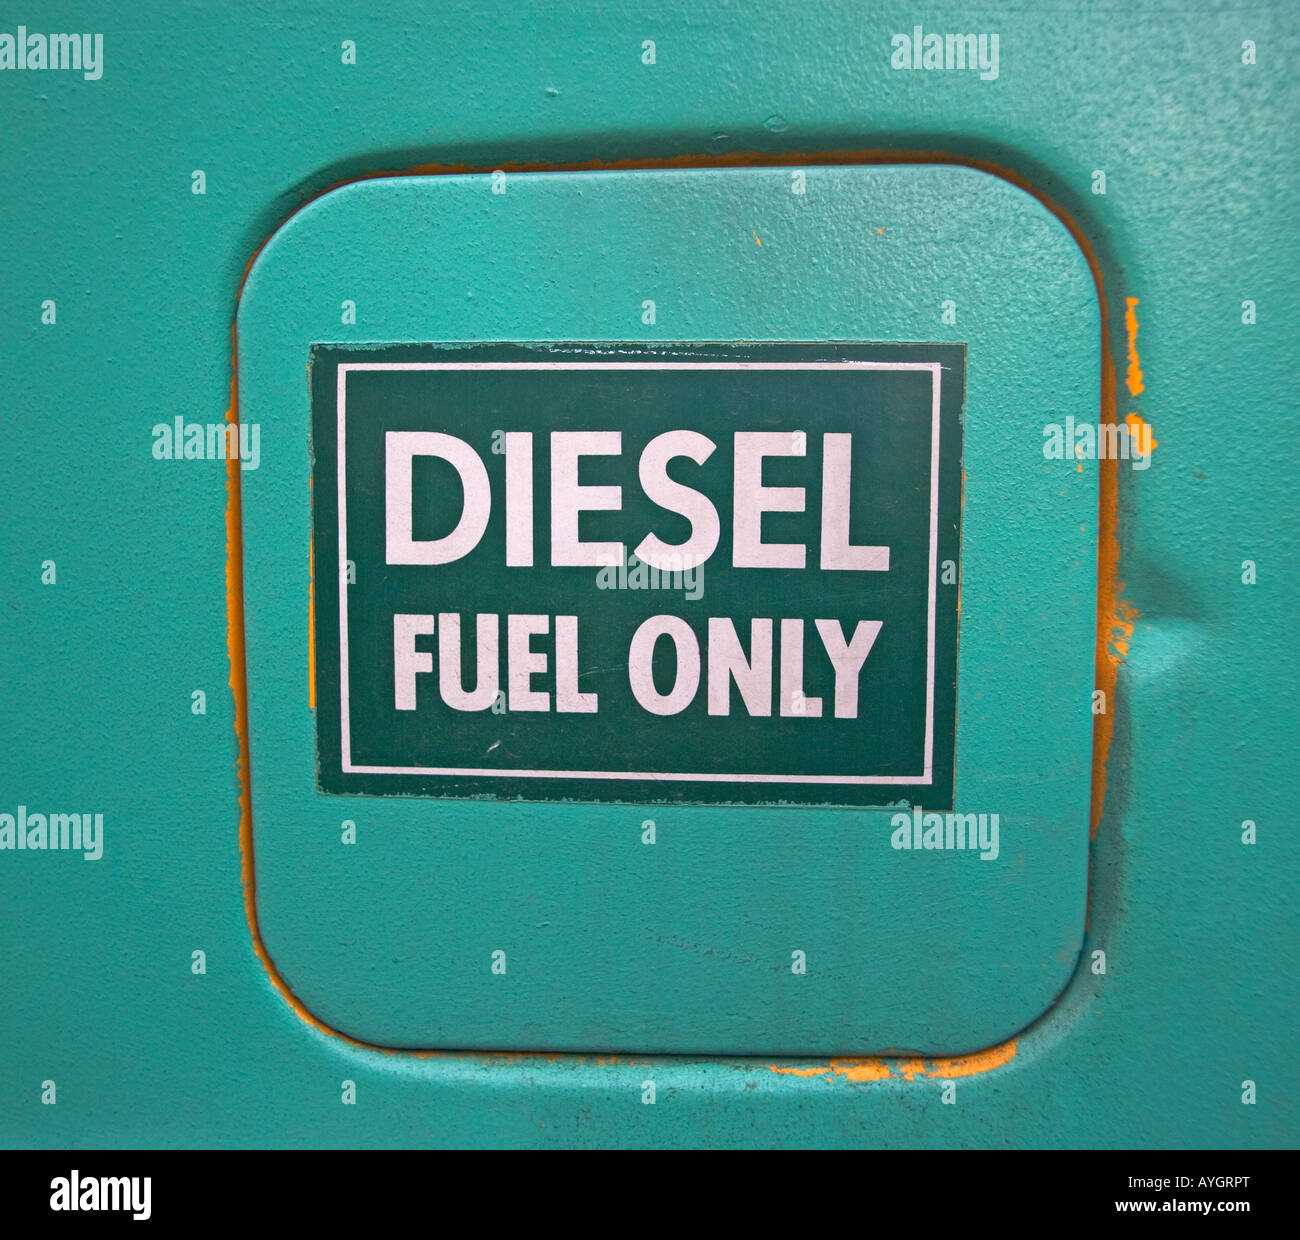 diesel gas, fuel - Stock Image